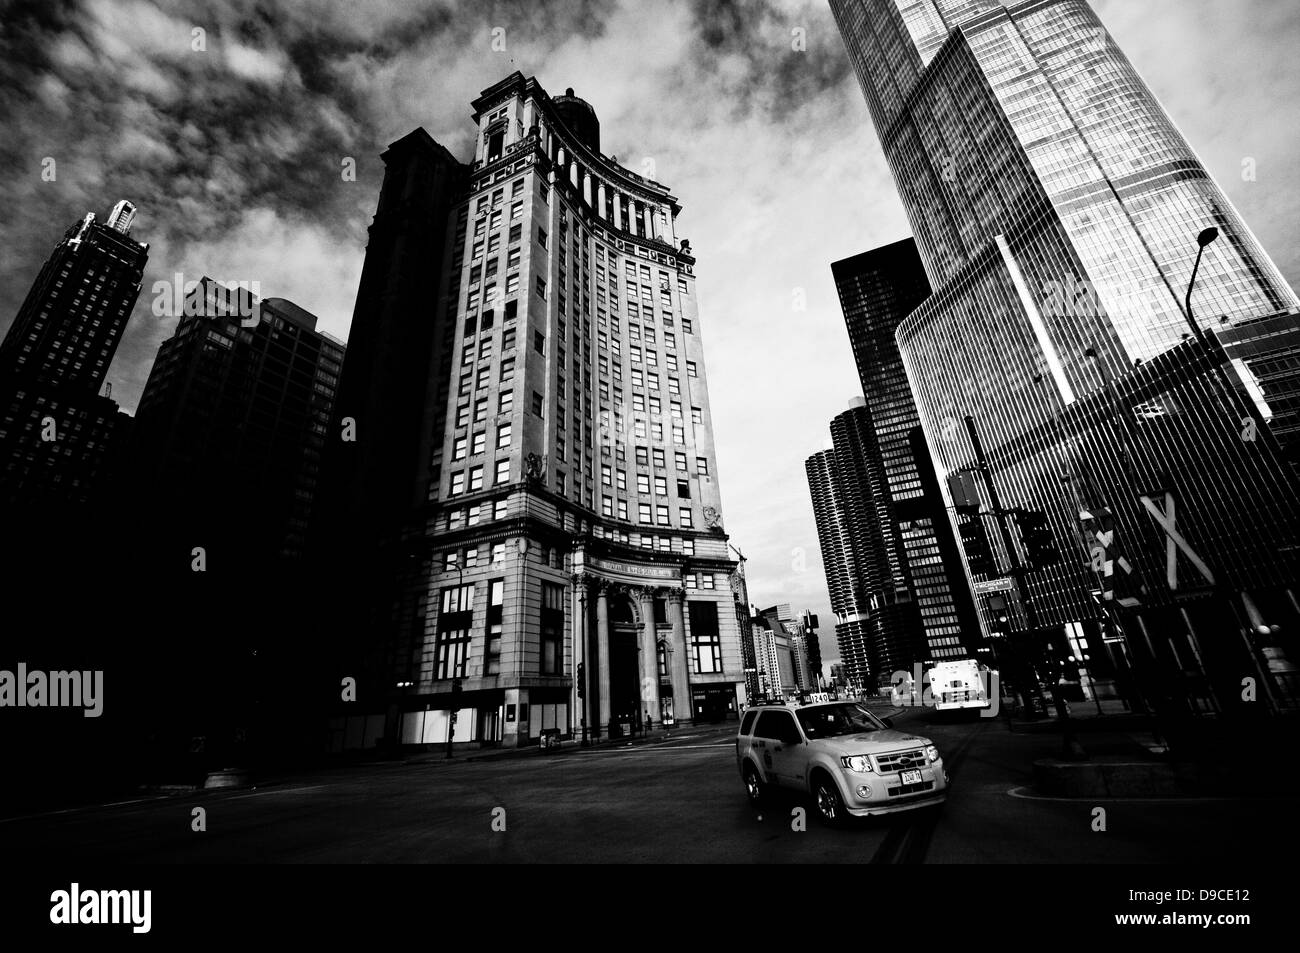 Downtown Chicago as seen from North Michigan Avenue - London Guarantee Building on the left & Trump Tower on - Stock Image